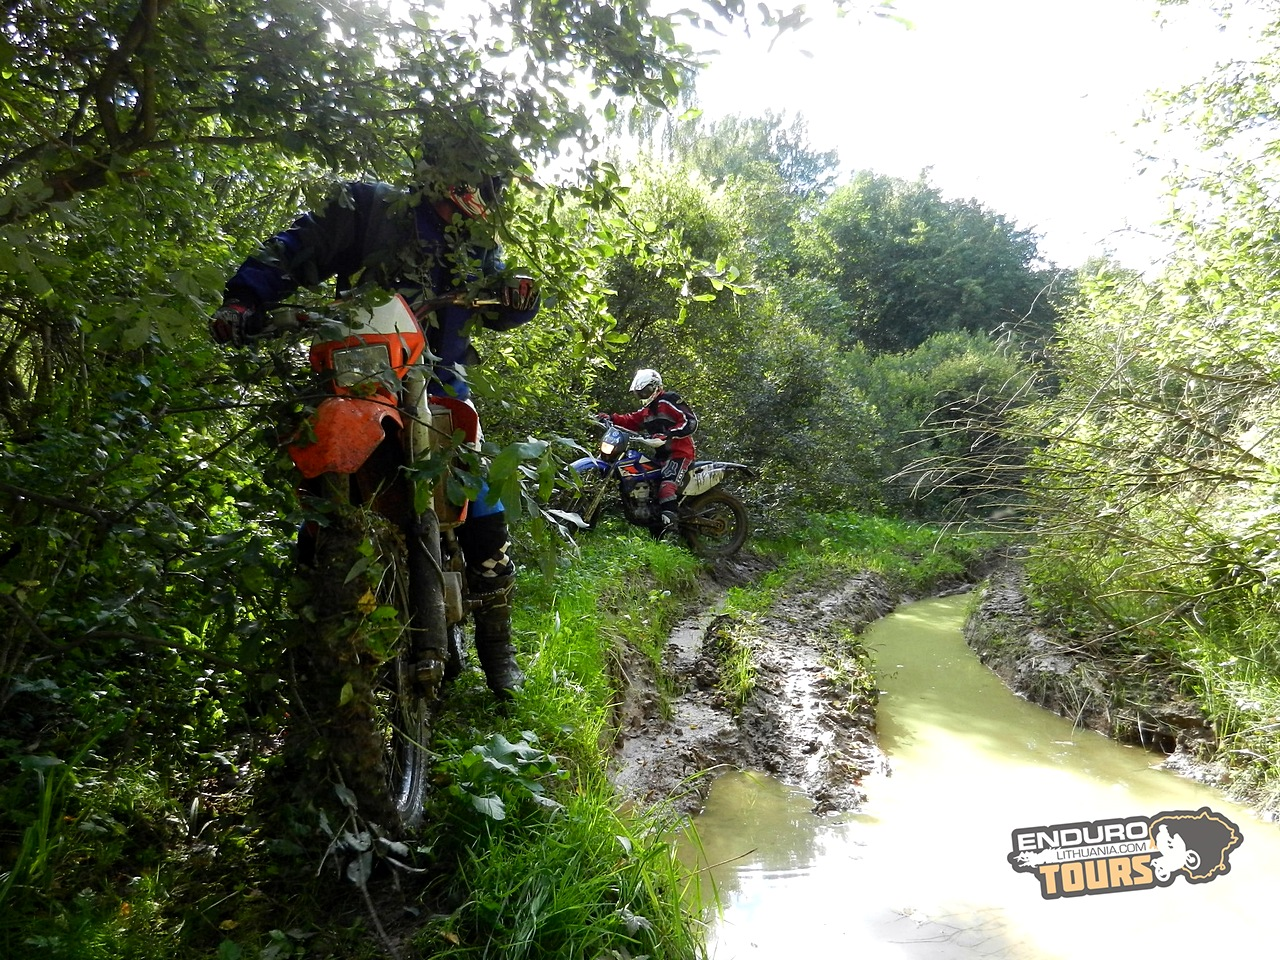 Enduro_Lithuania_Tours_1020